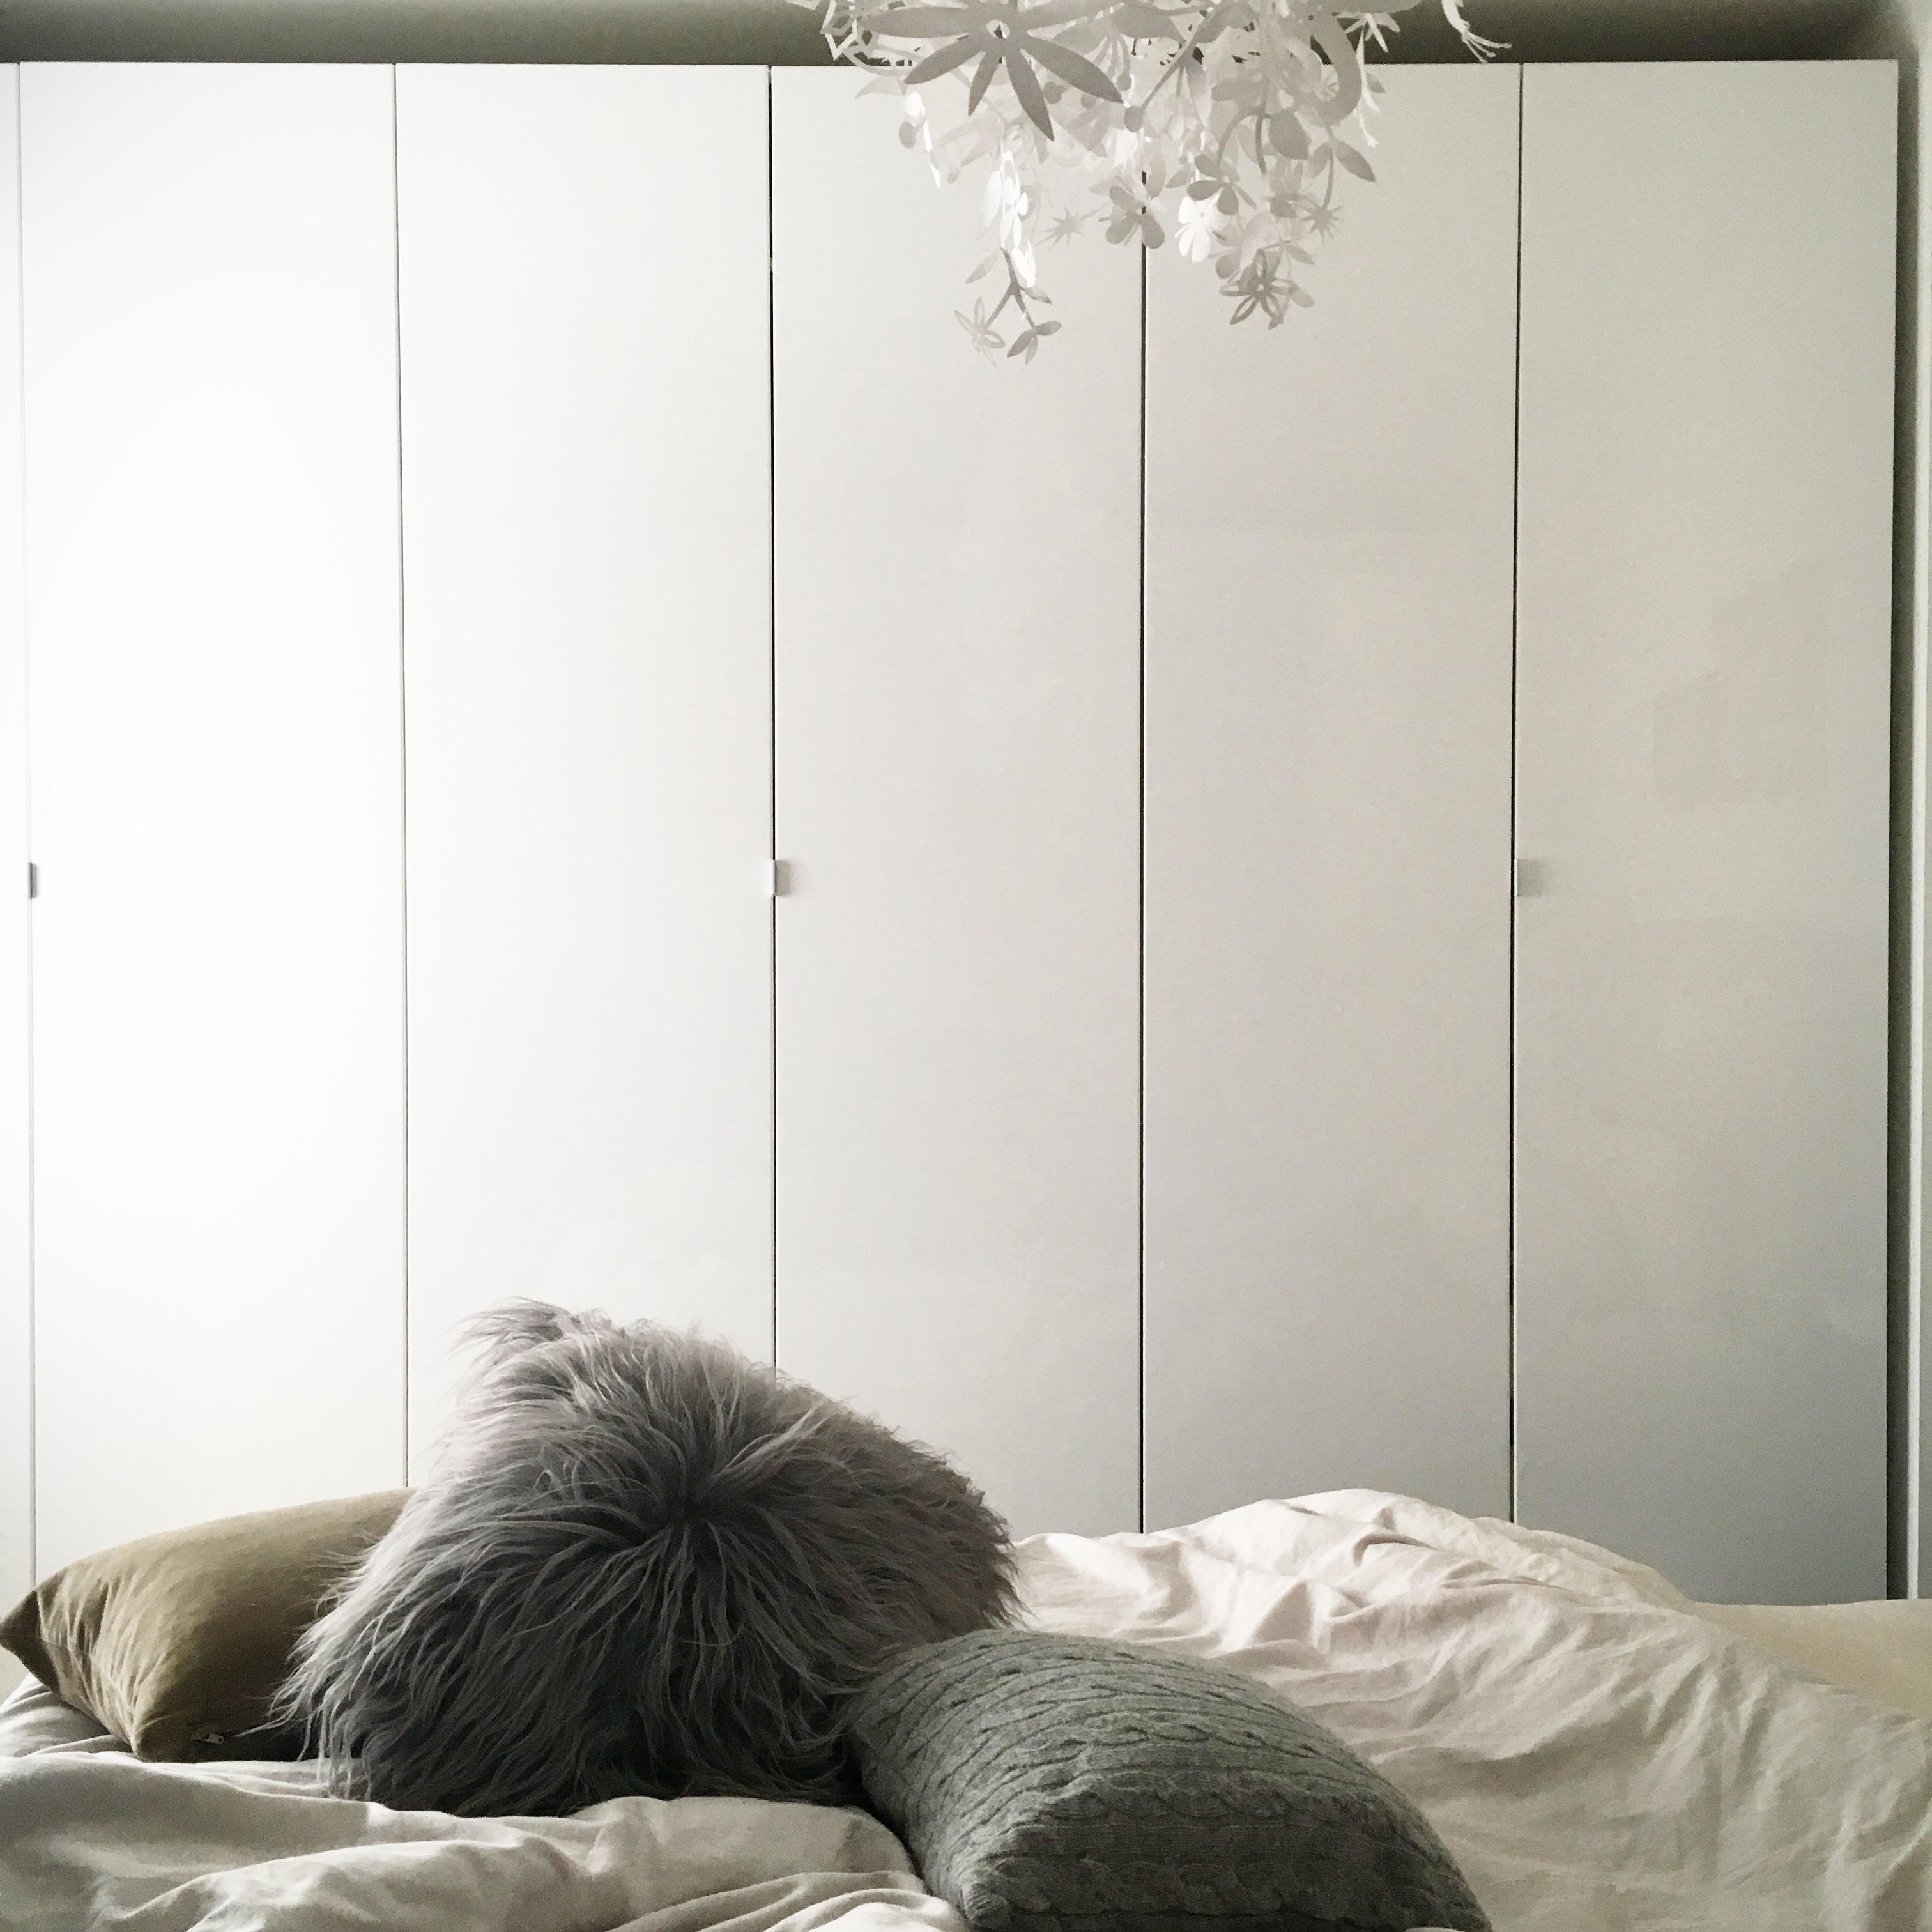 Stay in bed #bett #bettwäsche #schrank #ikea #lammfell ©ALL ABOUT DESIGN by Christina Harmsen